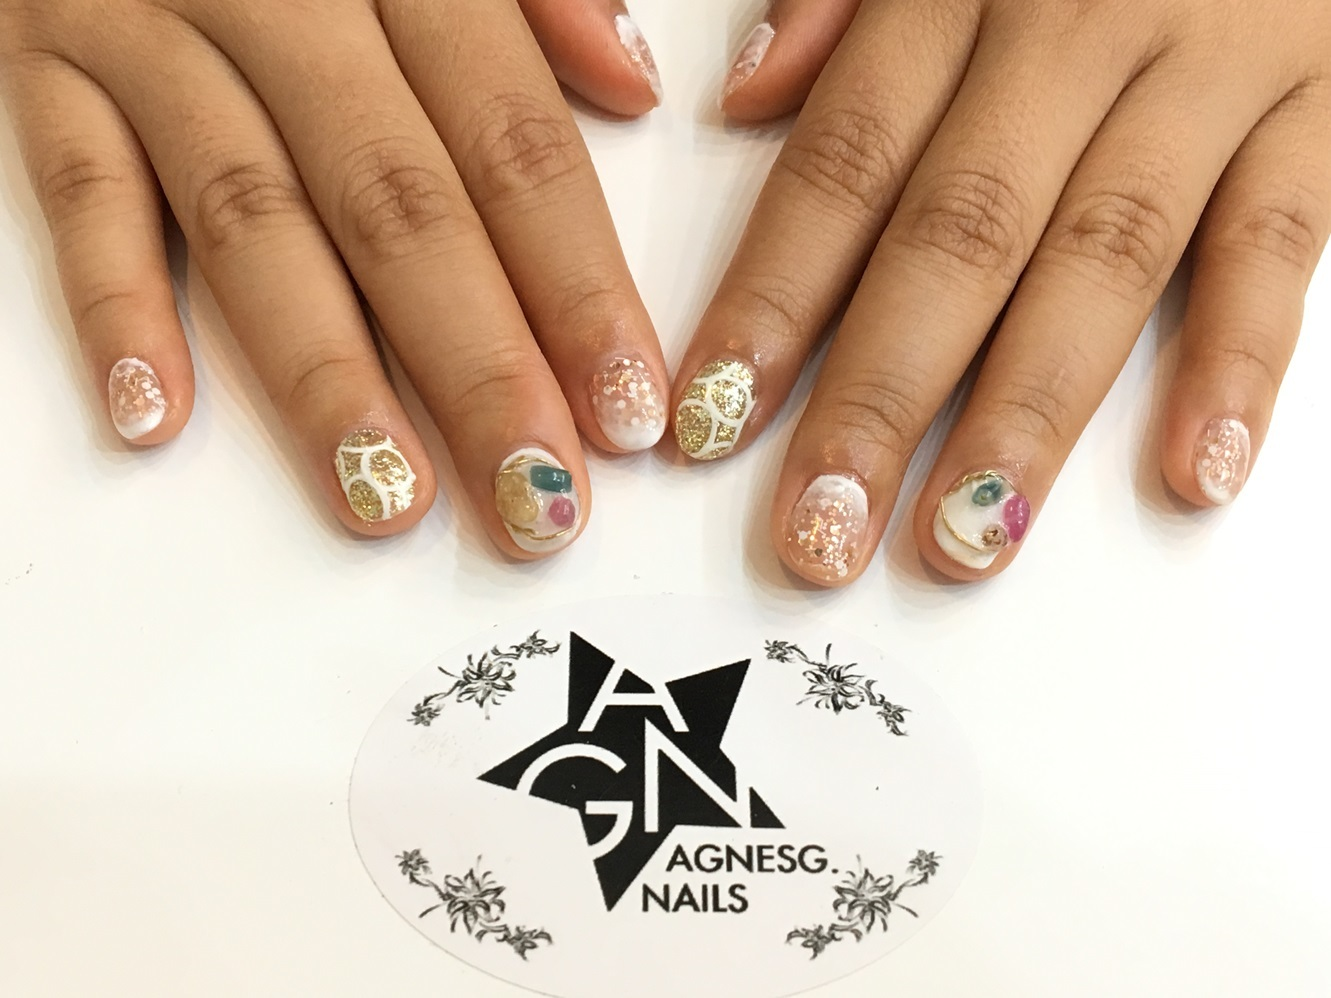 9 Best Nail Salons In Singapore For Mani, Padi and Nail Art